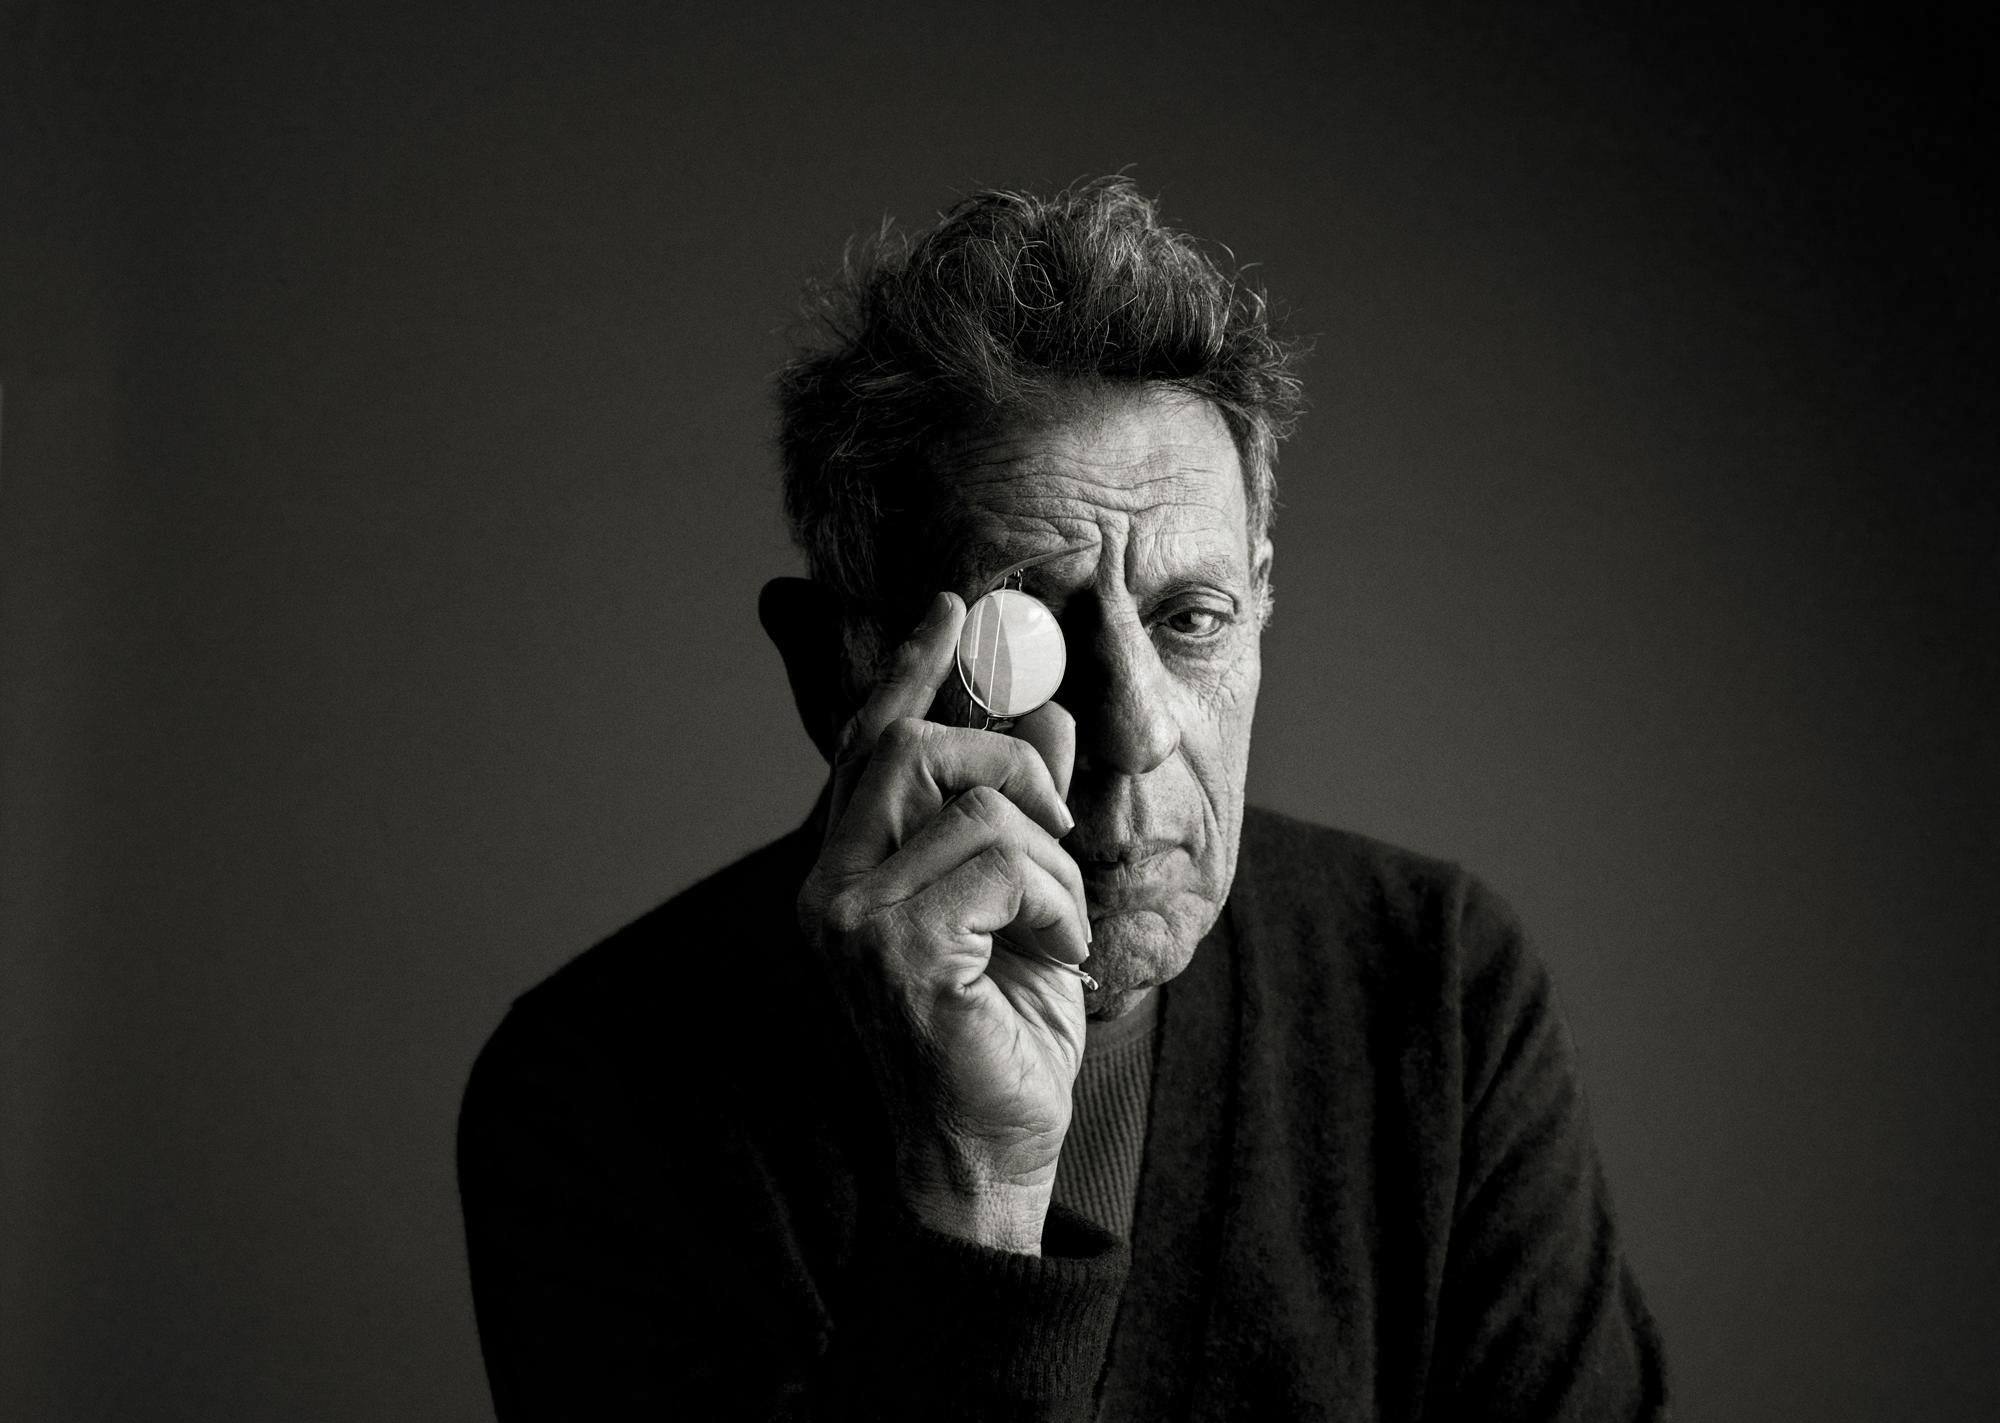 Philip Glass headshot in black and white with his hand held in front of one eye as if looking through a magnifying glass.